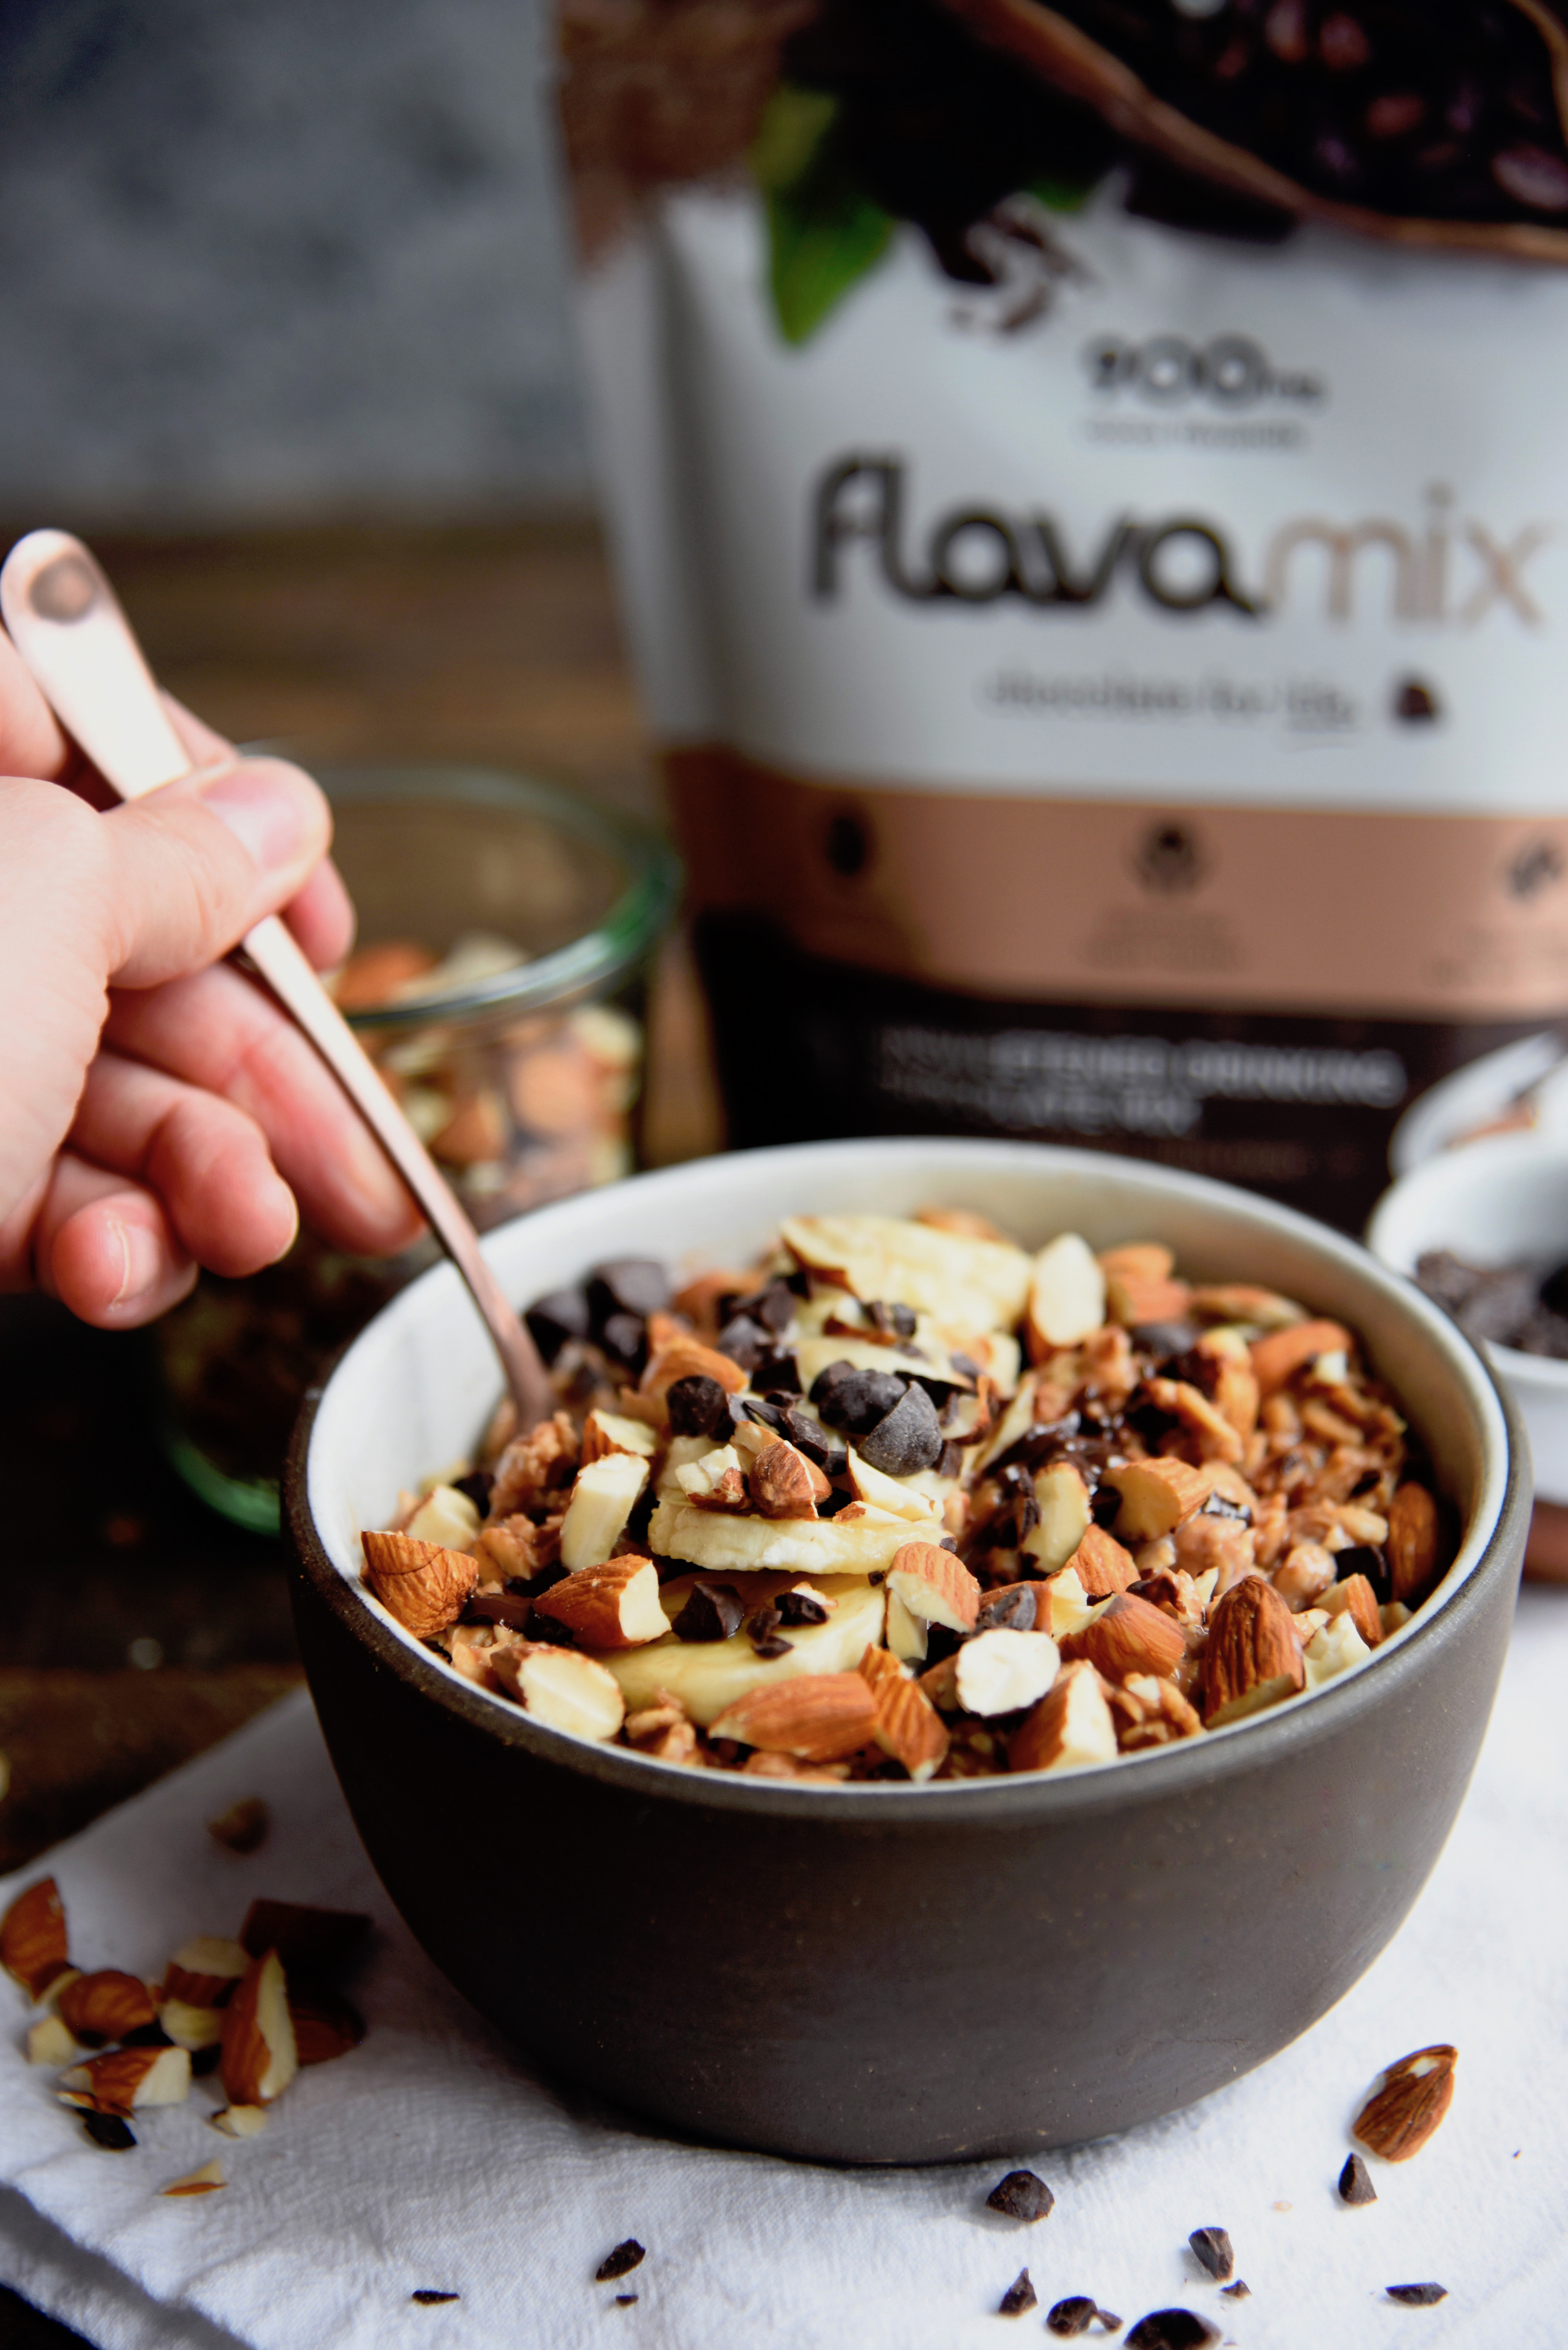 Chocolate Almond Oatmeal Recipe with FlavaMix Unsweetened Drinking Chocolate, 900mg Cocoa Flavanols